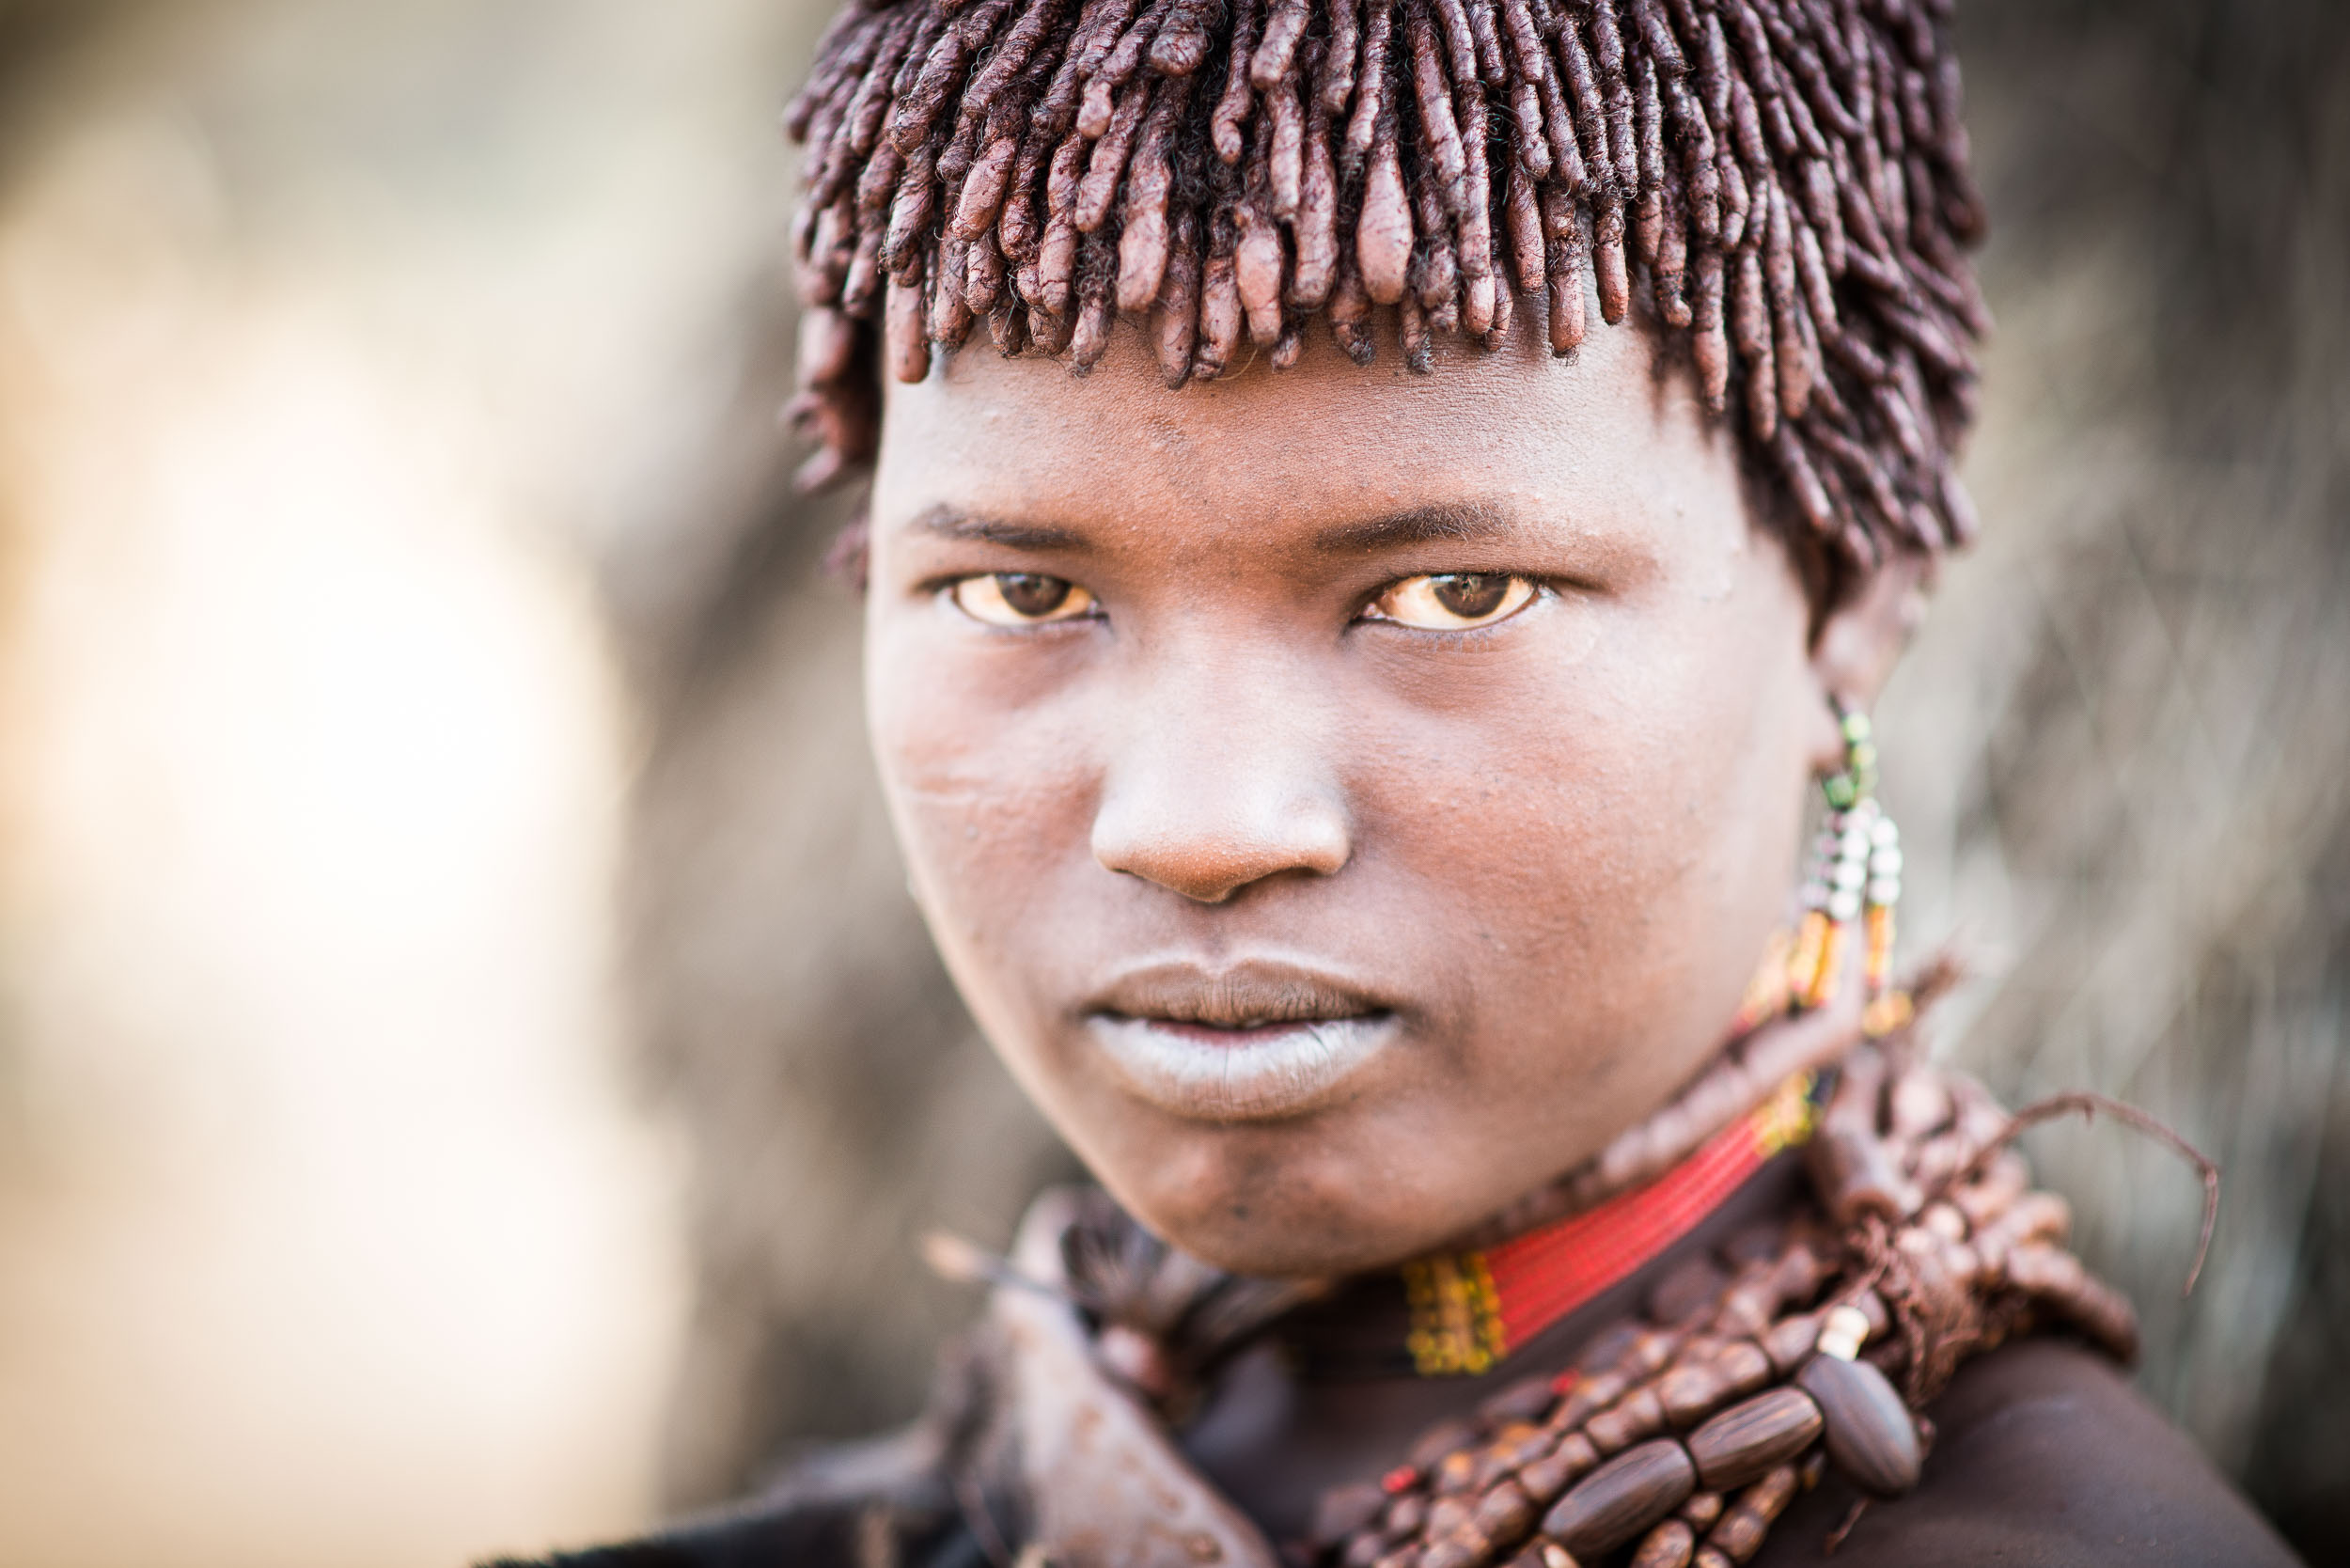 Ethiopia Hamar woman portrait - Travel - Photo credit Nicola Bailey.jpg